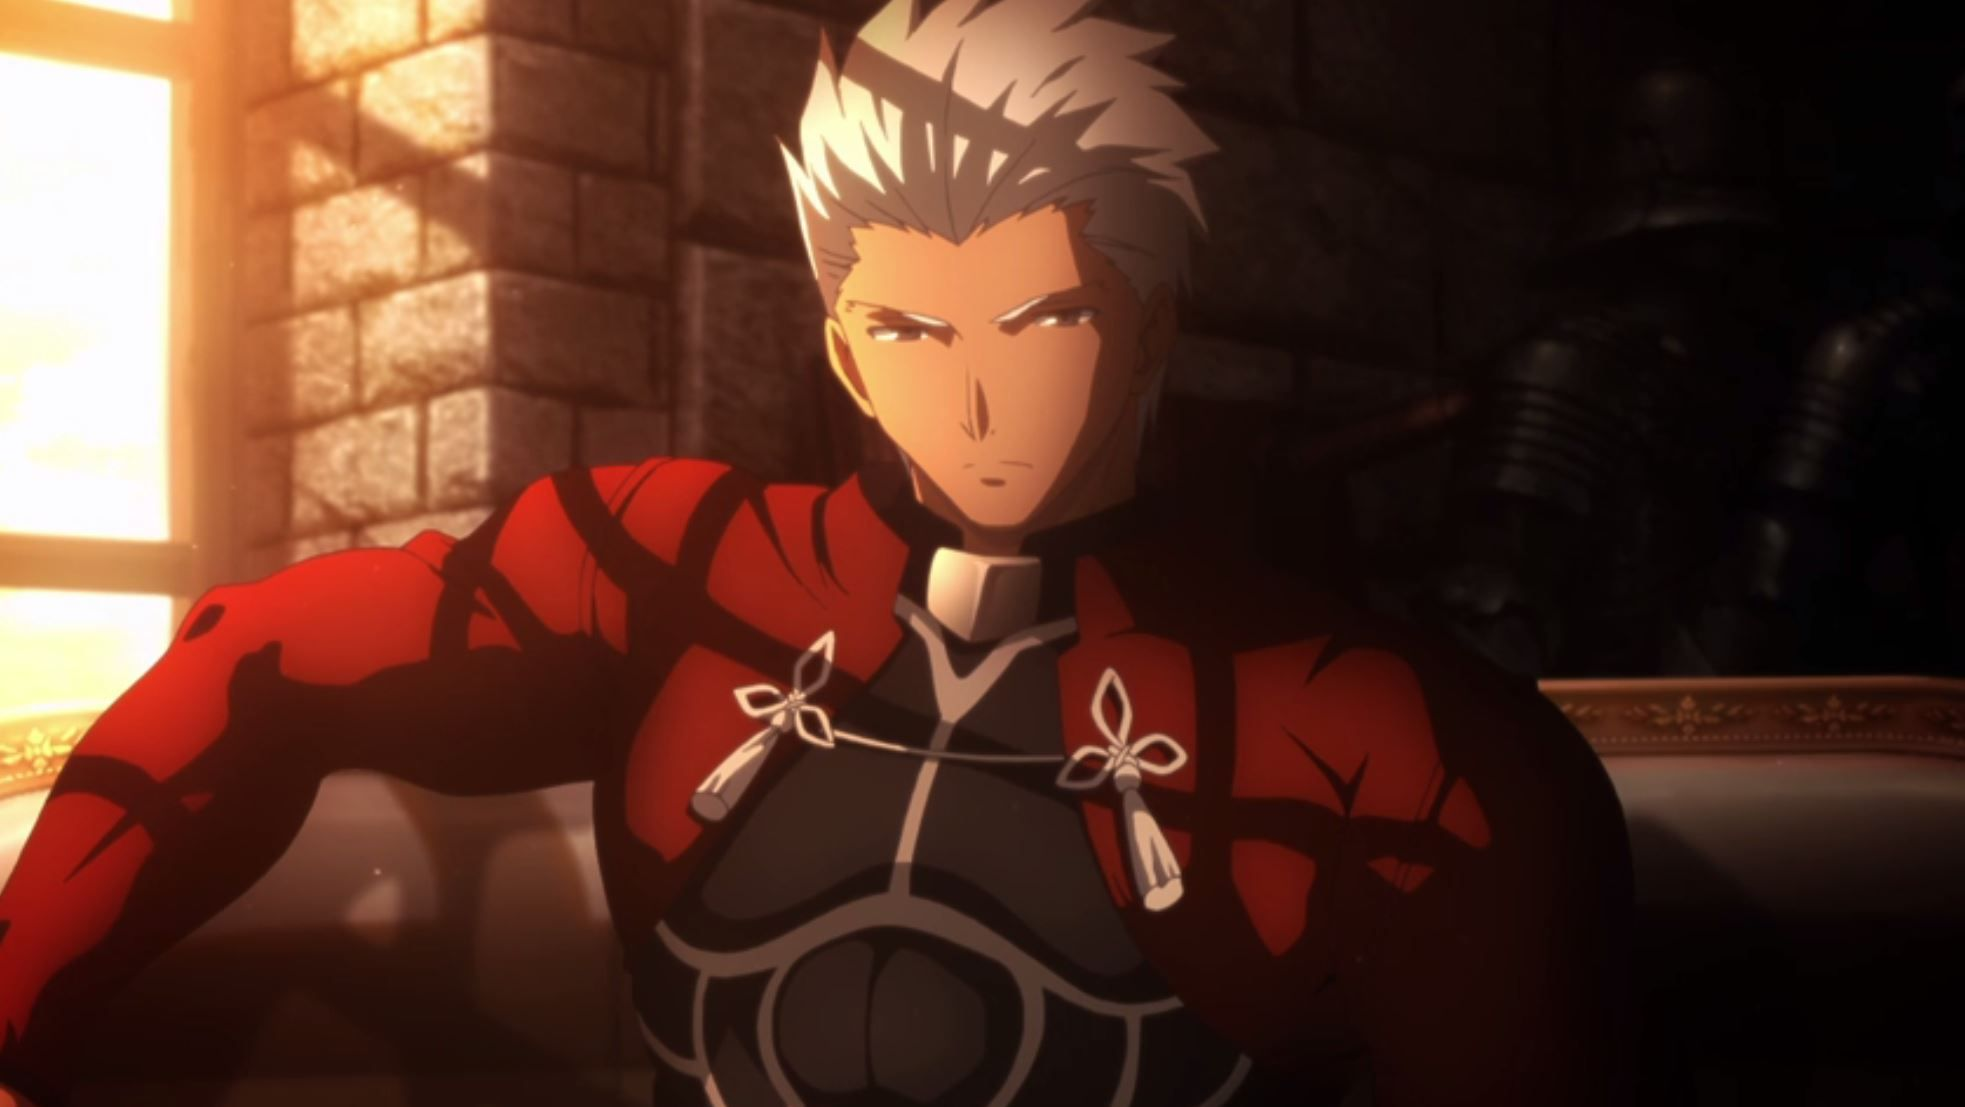 Fate Stay Night Archer Fate Stay Night Anime Anime Fate Stay Night Over 900k words easily one of the best fate fics. fate stay night archer fate stay